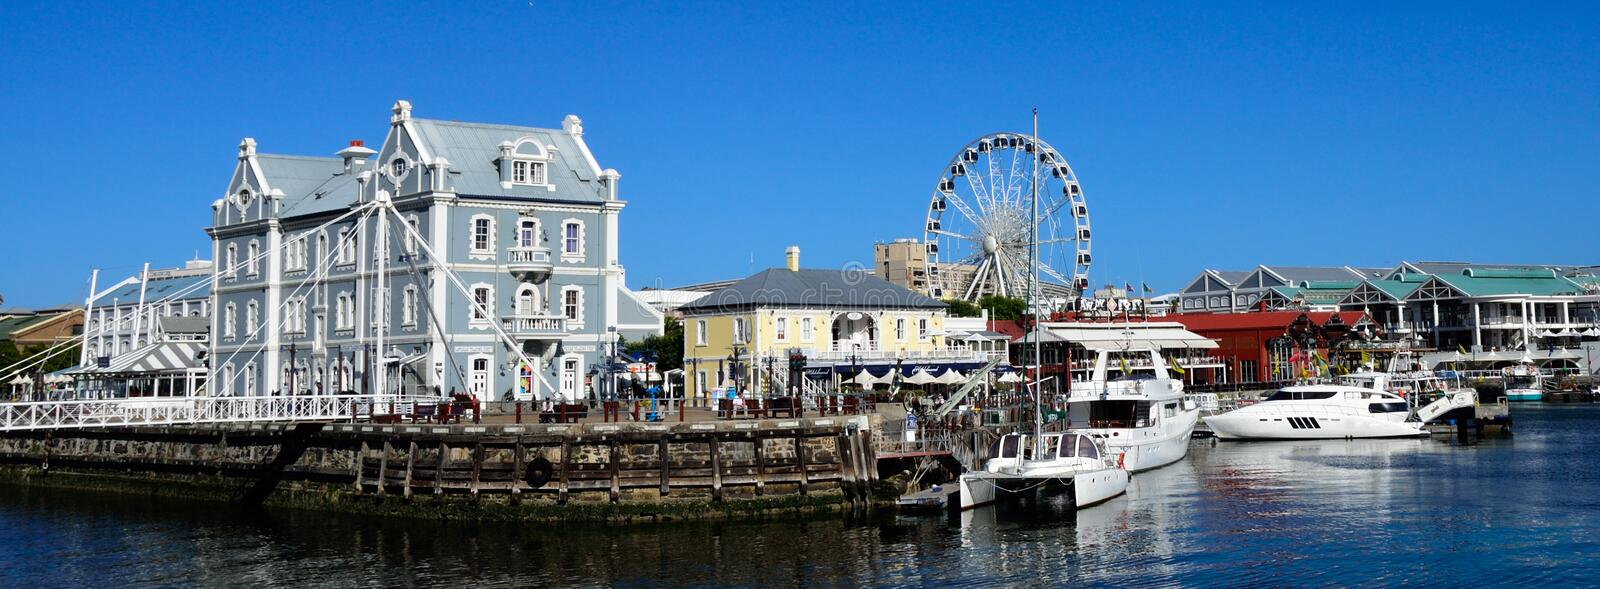 Download V&A Waterfront Cape Town, South Africa Stock Image - Image: 29113599